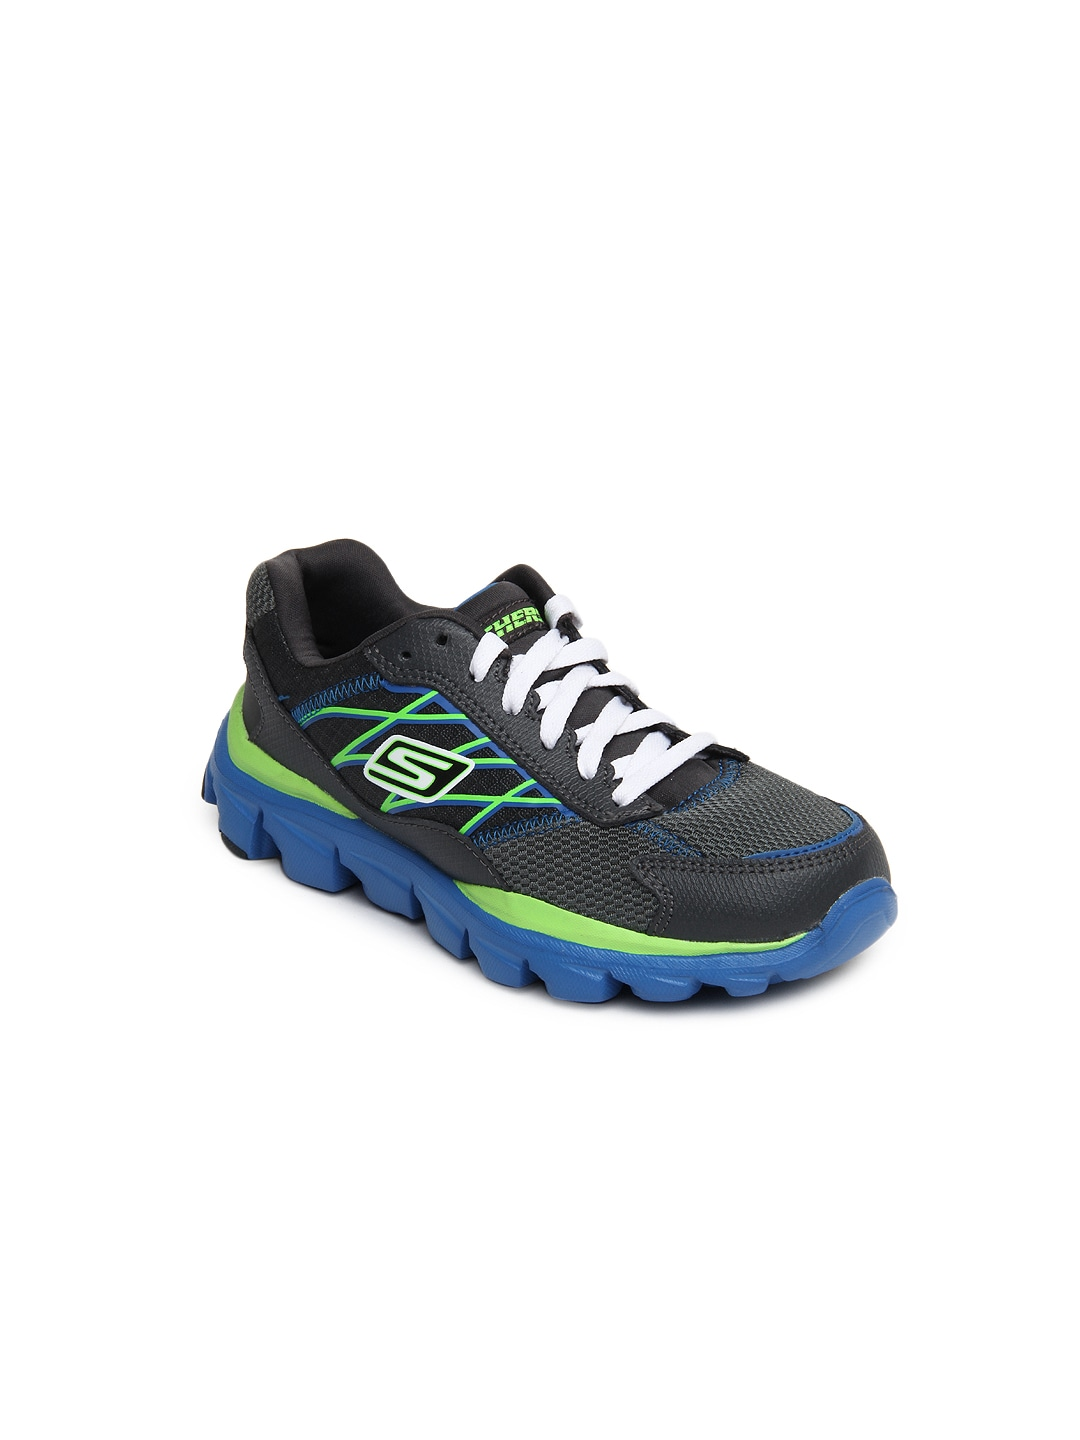 Women's Sneakers, Athletic & Running Shoes - Nordstrom